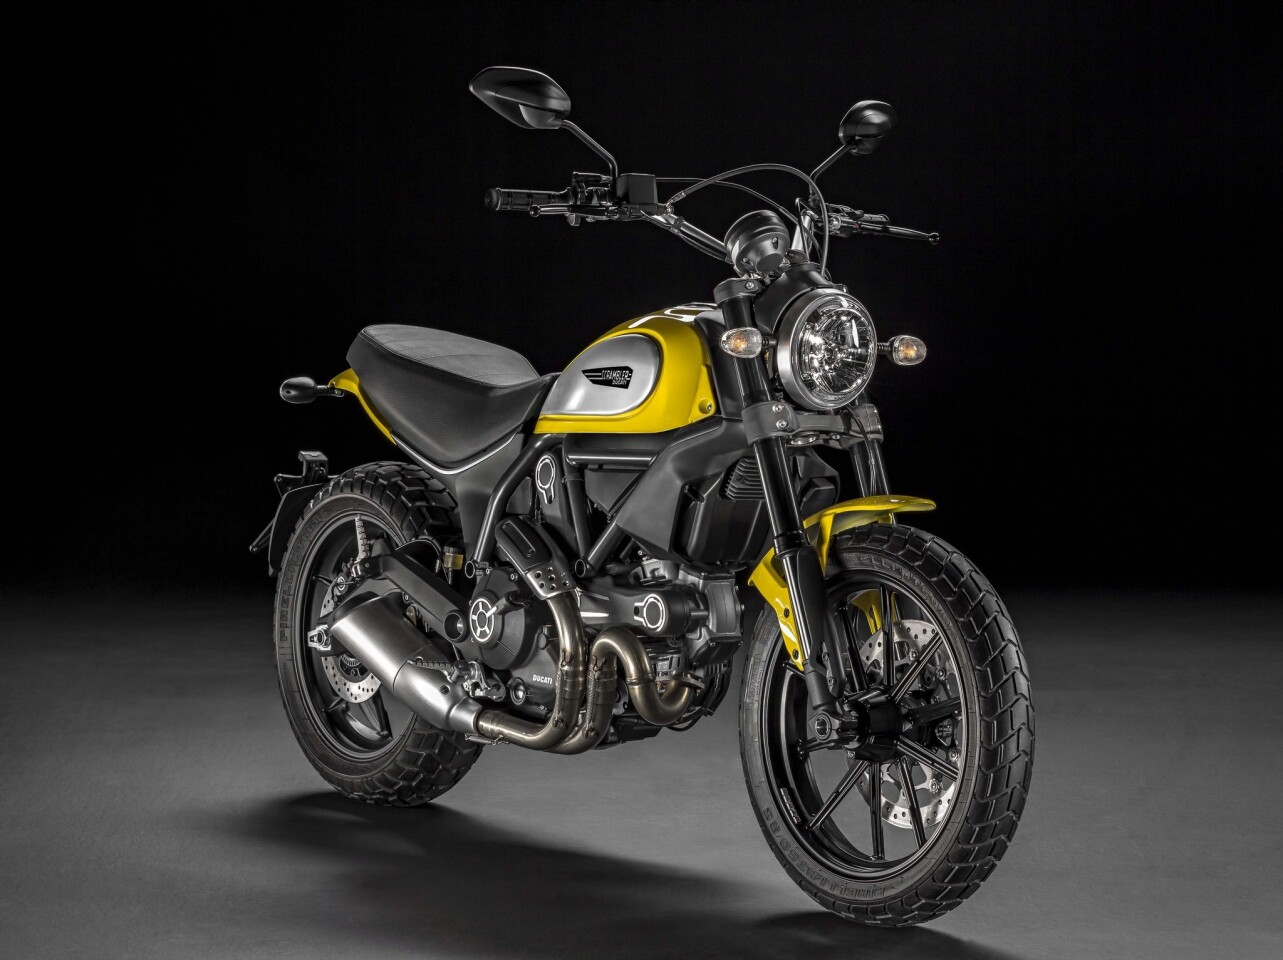 The baseline Icon version of the Scrambler, retailing at under $8500.